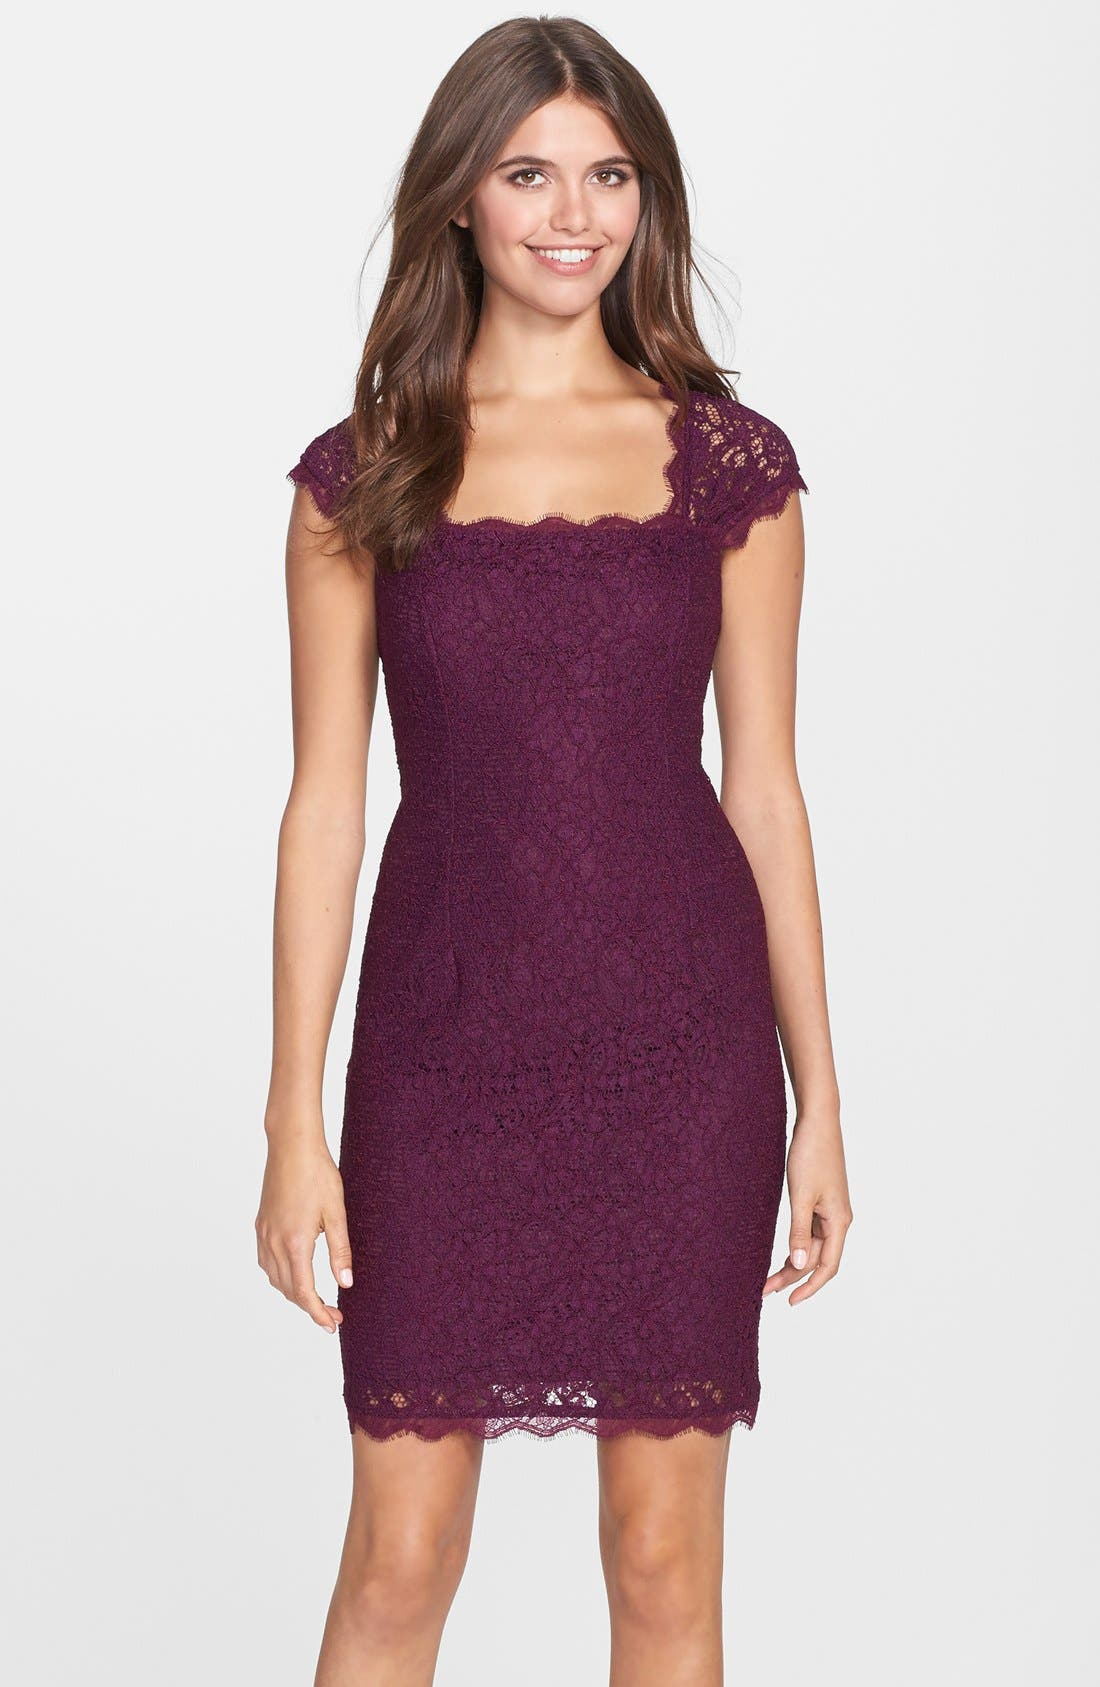 Alternate Image 1 Selected - Adrianna Papell Lace Sheath Dress (Regular & Petite)